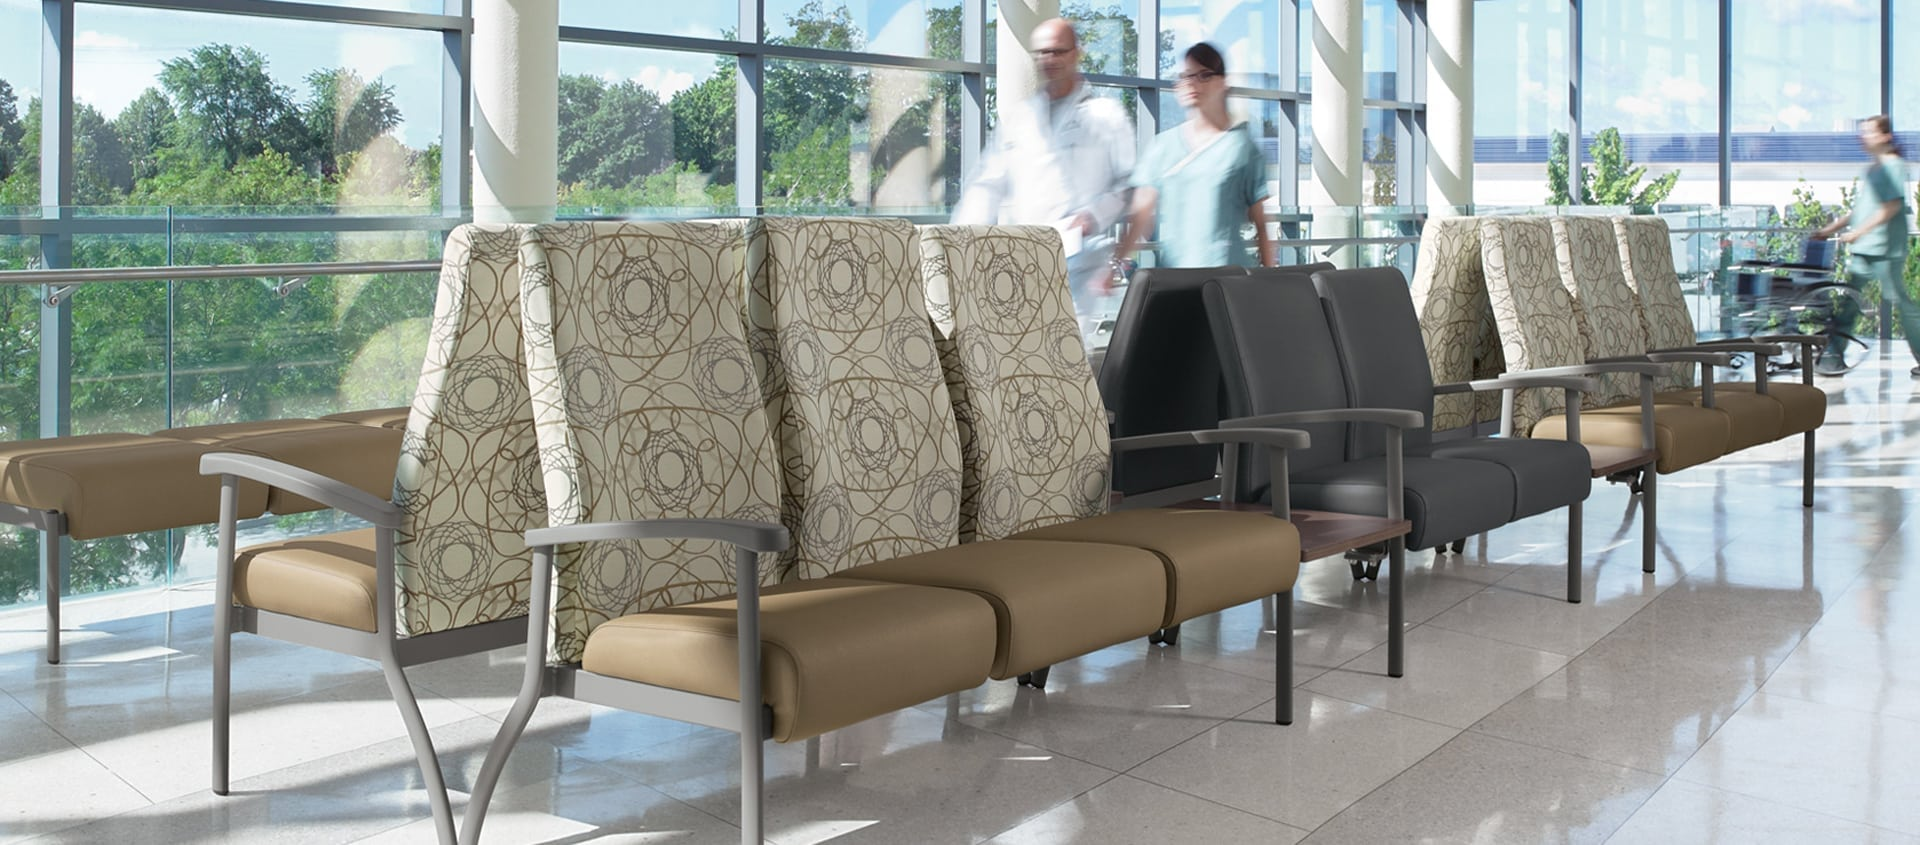 The Global GC Belong brings a classy look to your waiting room setting